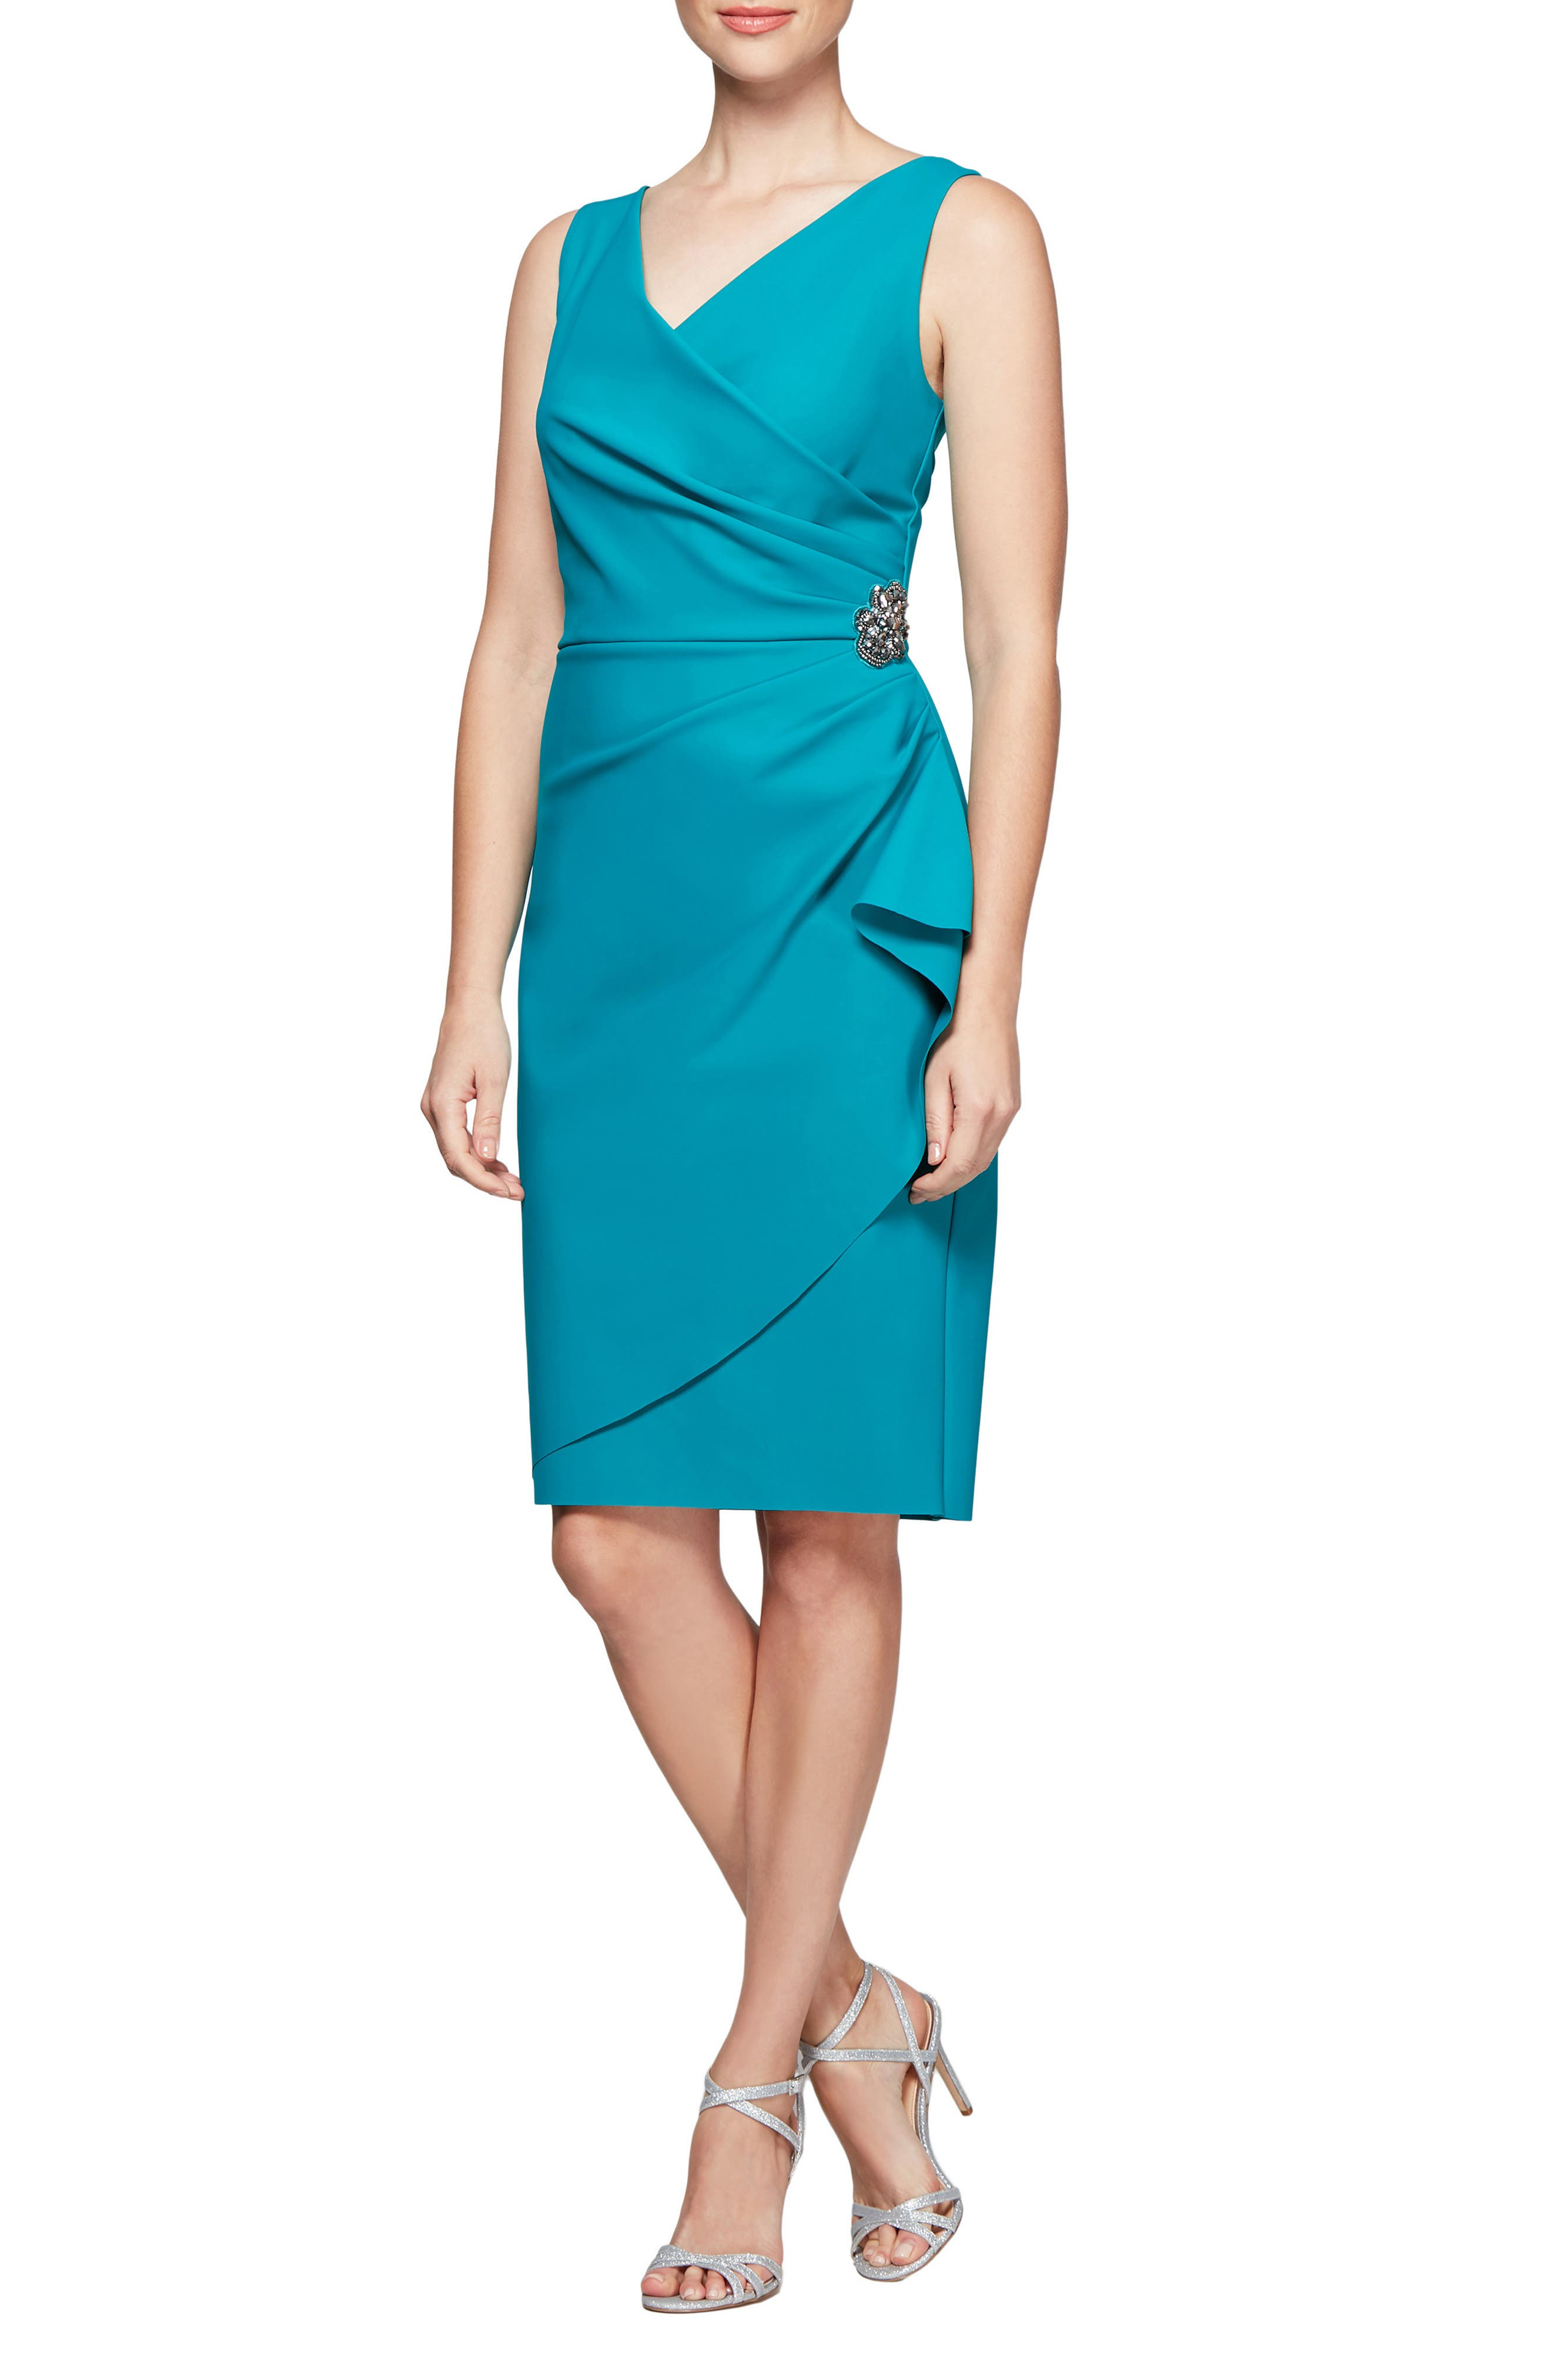 ALEX EVENINGS, Side Ruched Dress, Main thumbnail 1, color, TURQUOISE